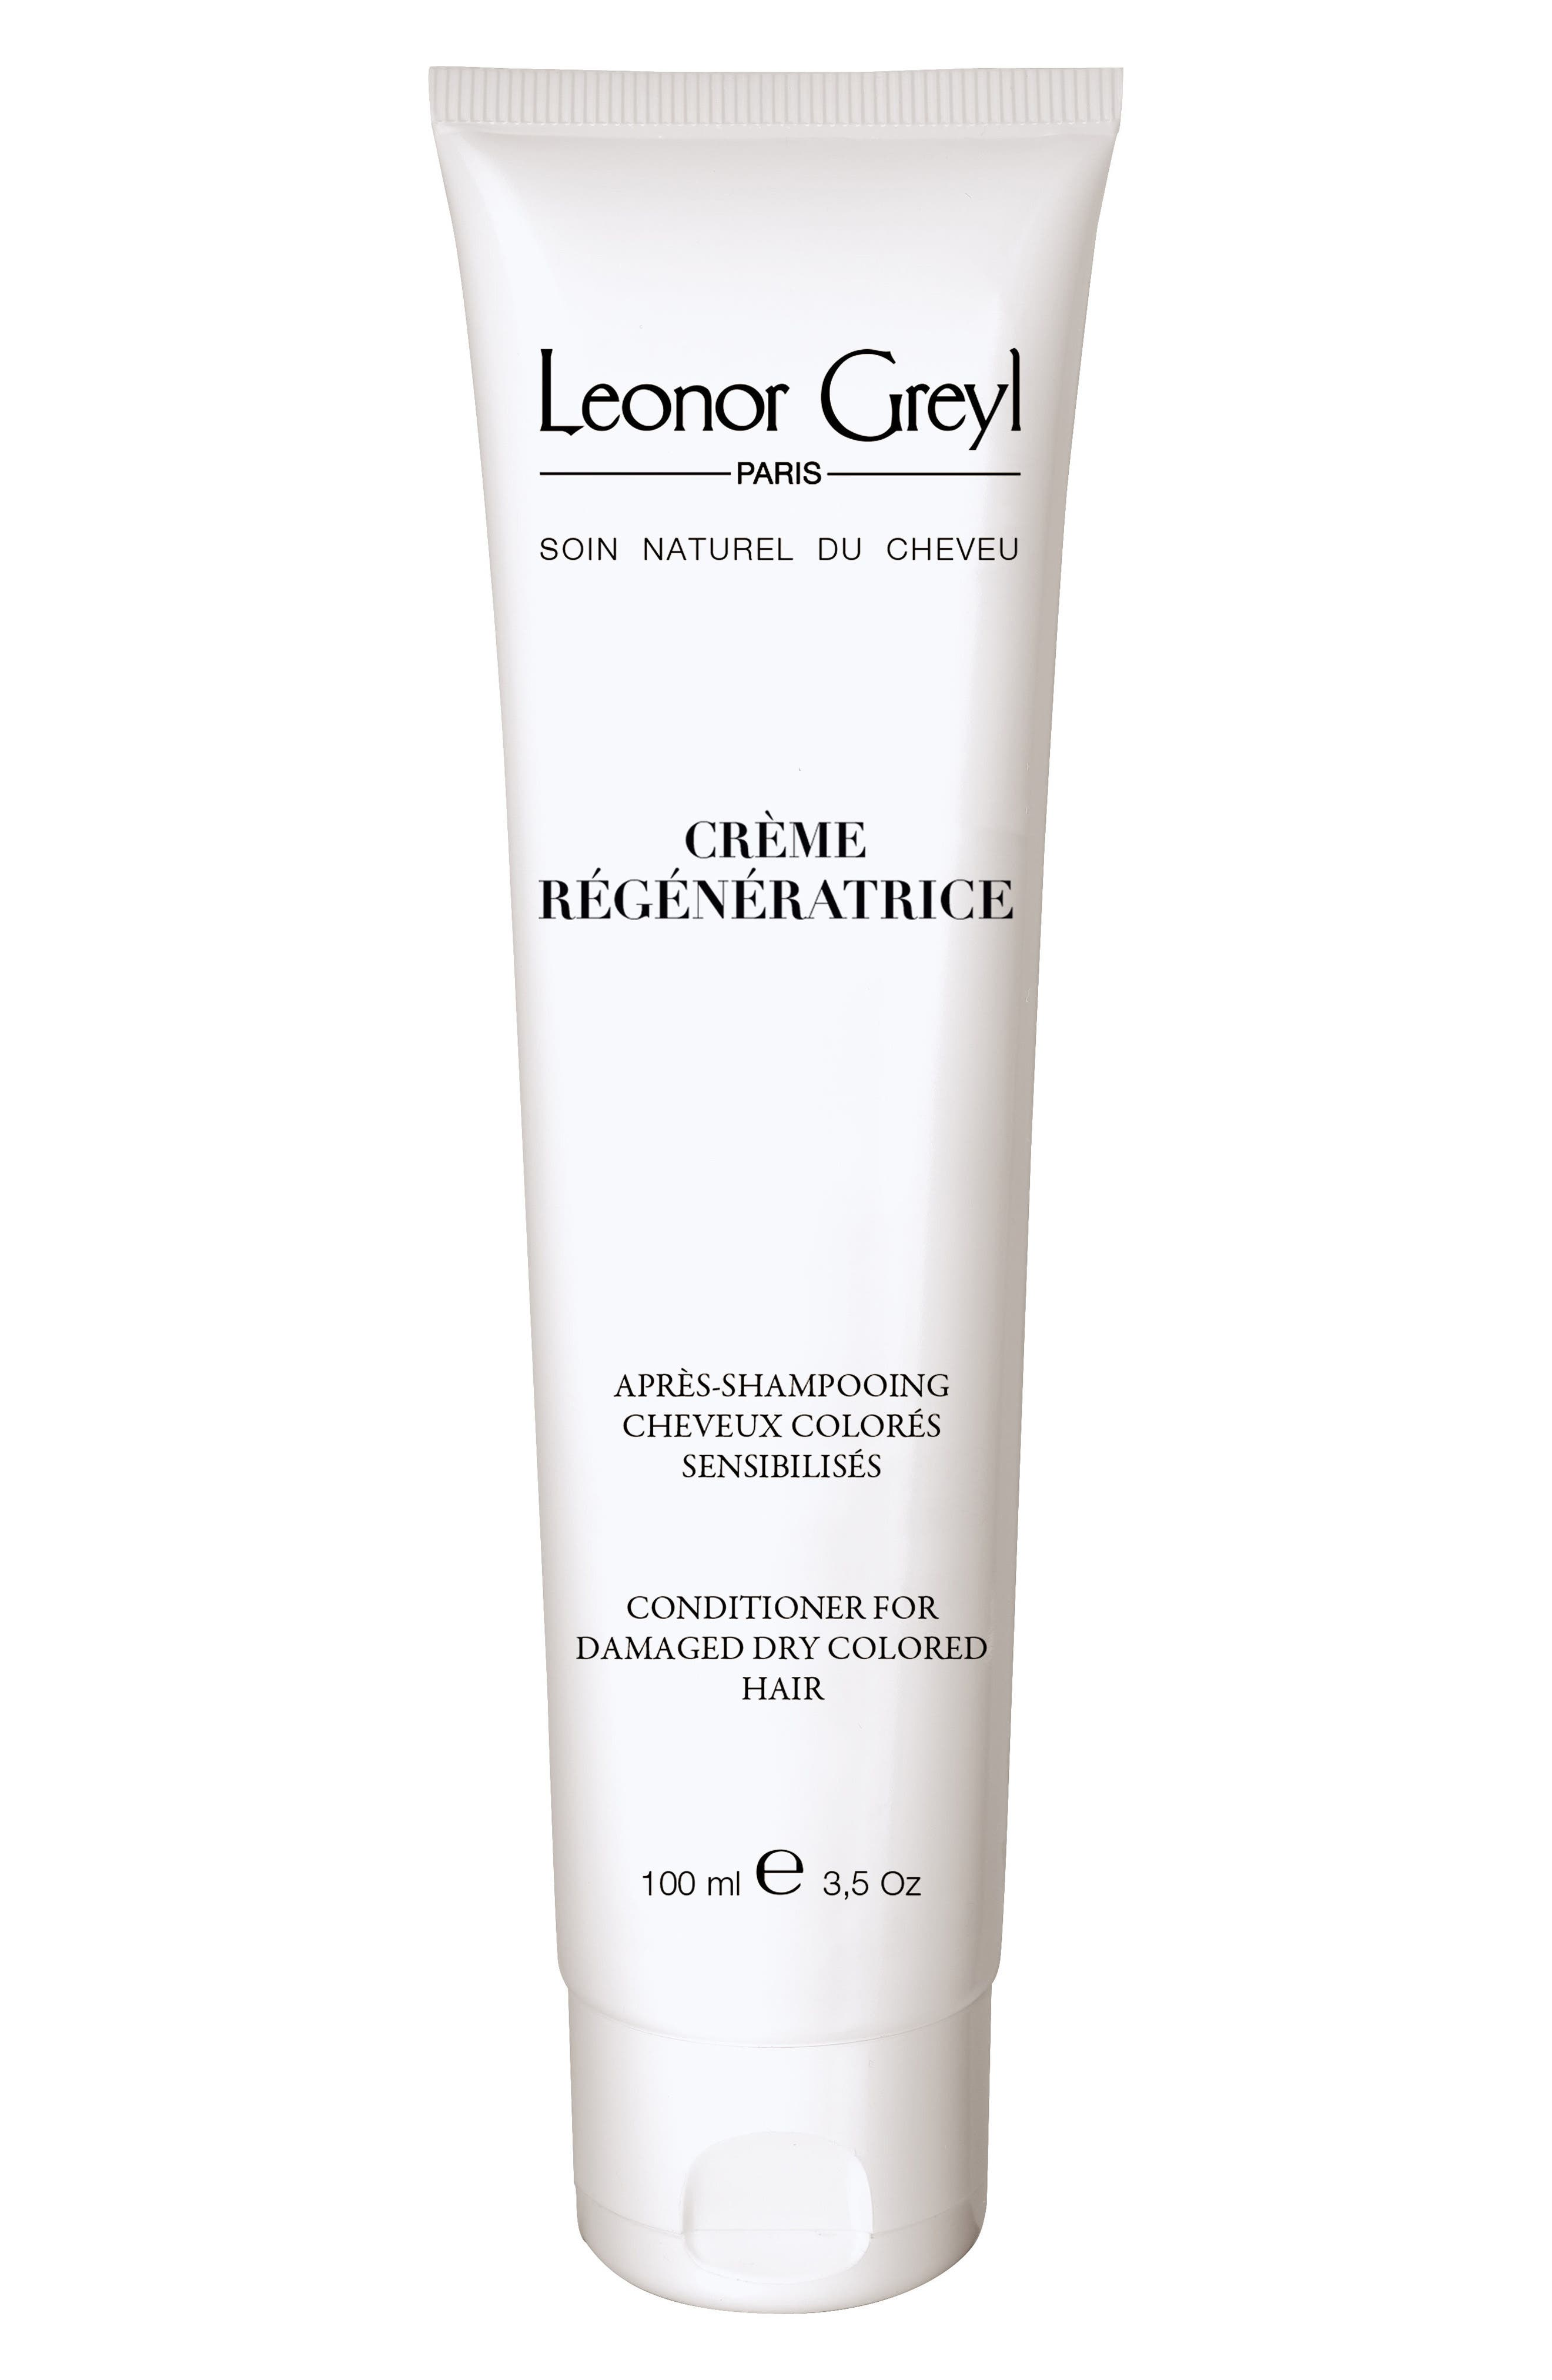 Cr & #232Me Regeneratrice (Conditioner For Damaged, Dry, Colored Hair), 3.5 Oz./ 100 Ml